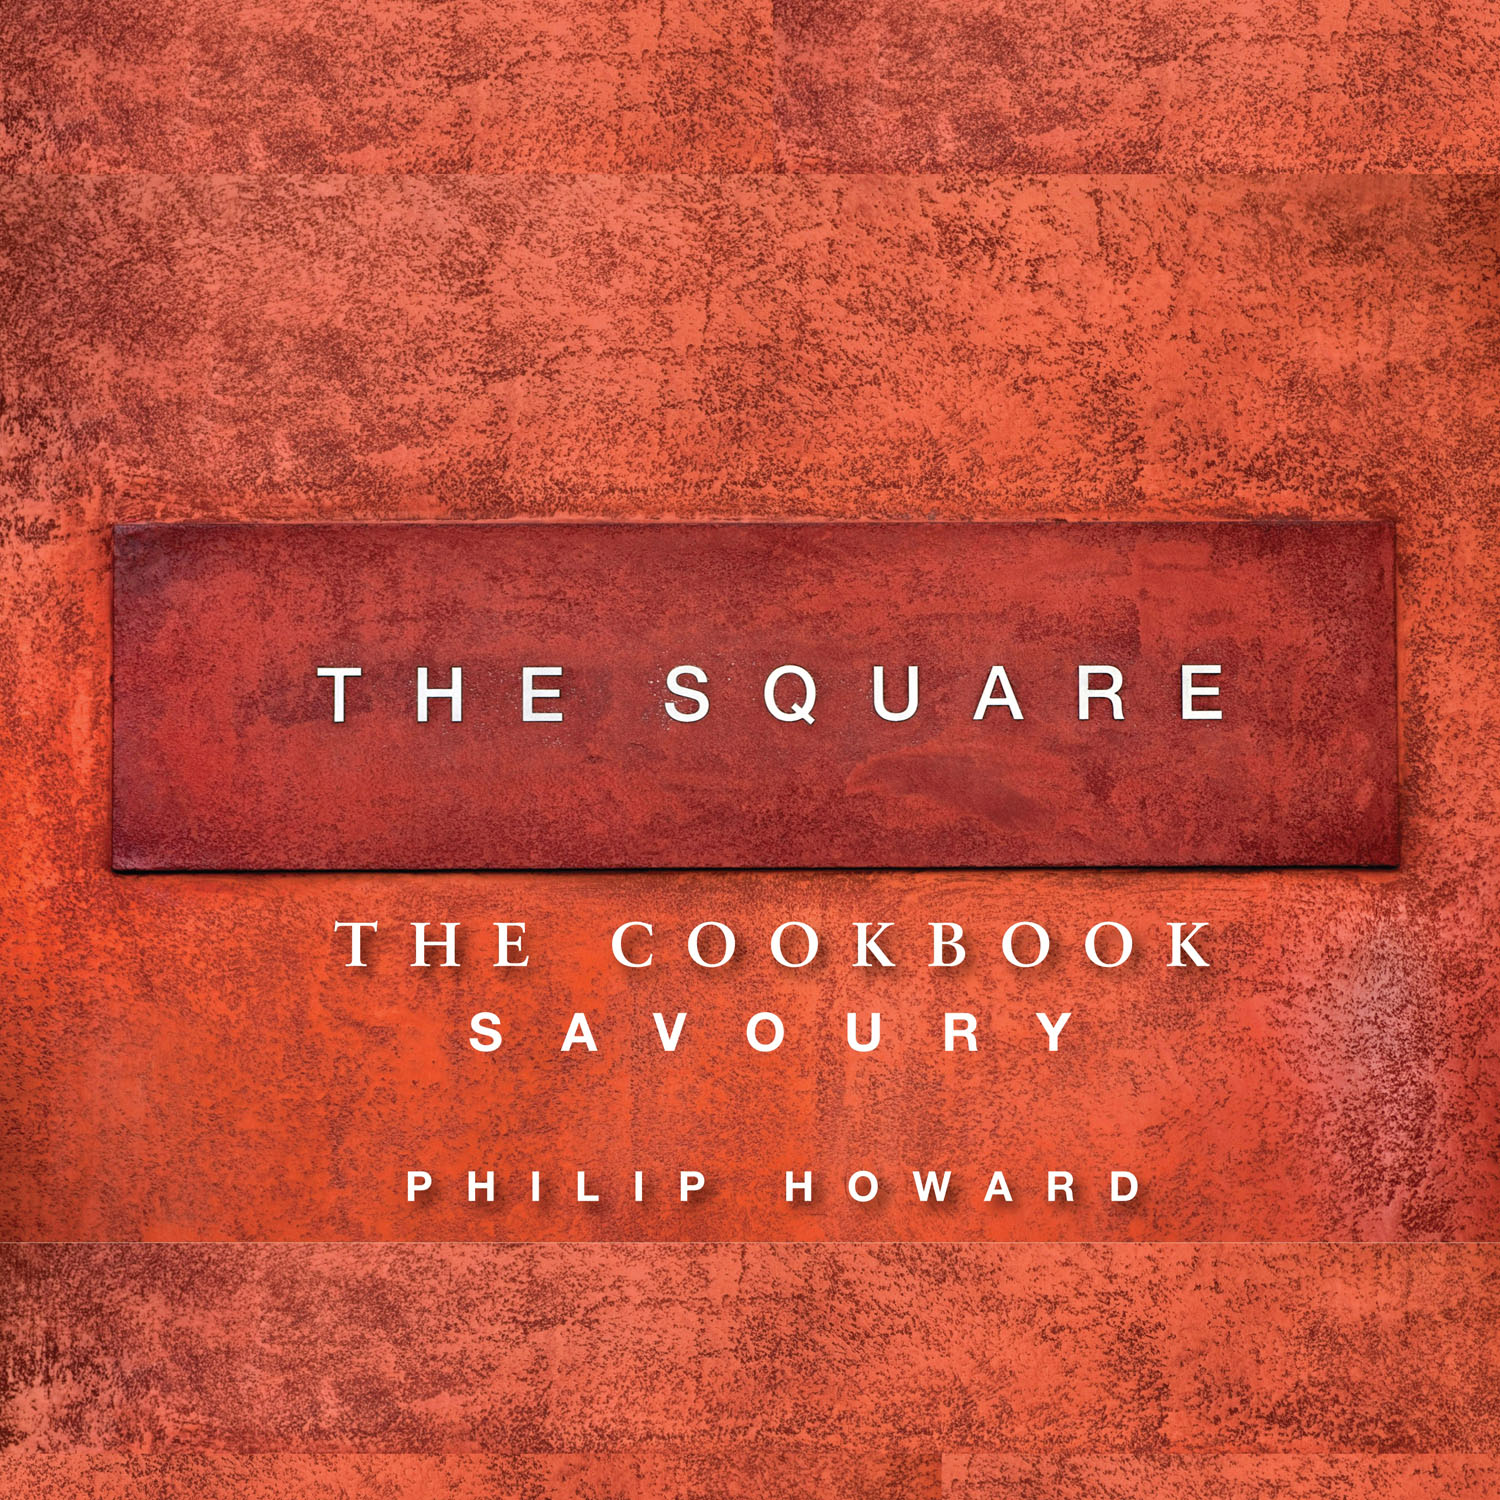 The Square: Savoury by Philip Howard, ISBN: 9781906650599